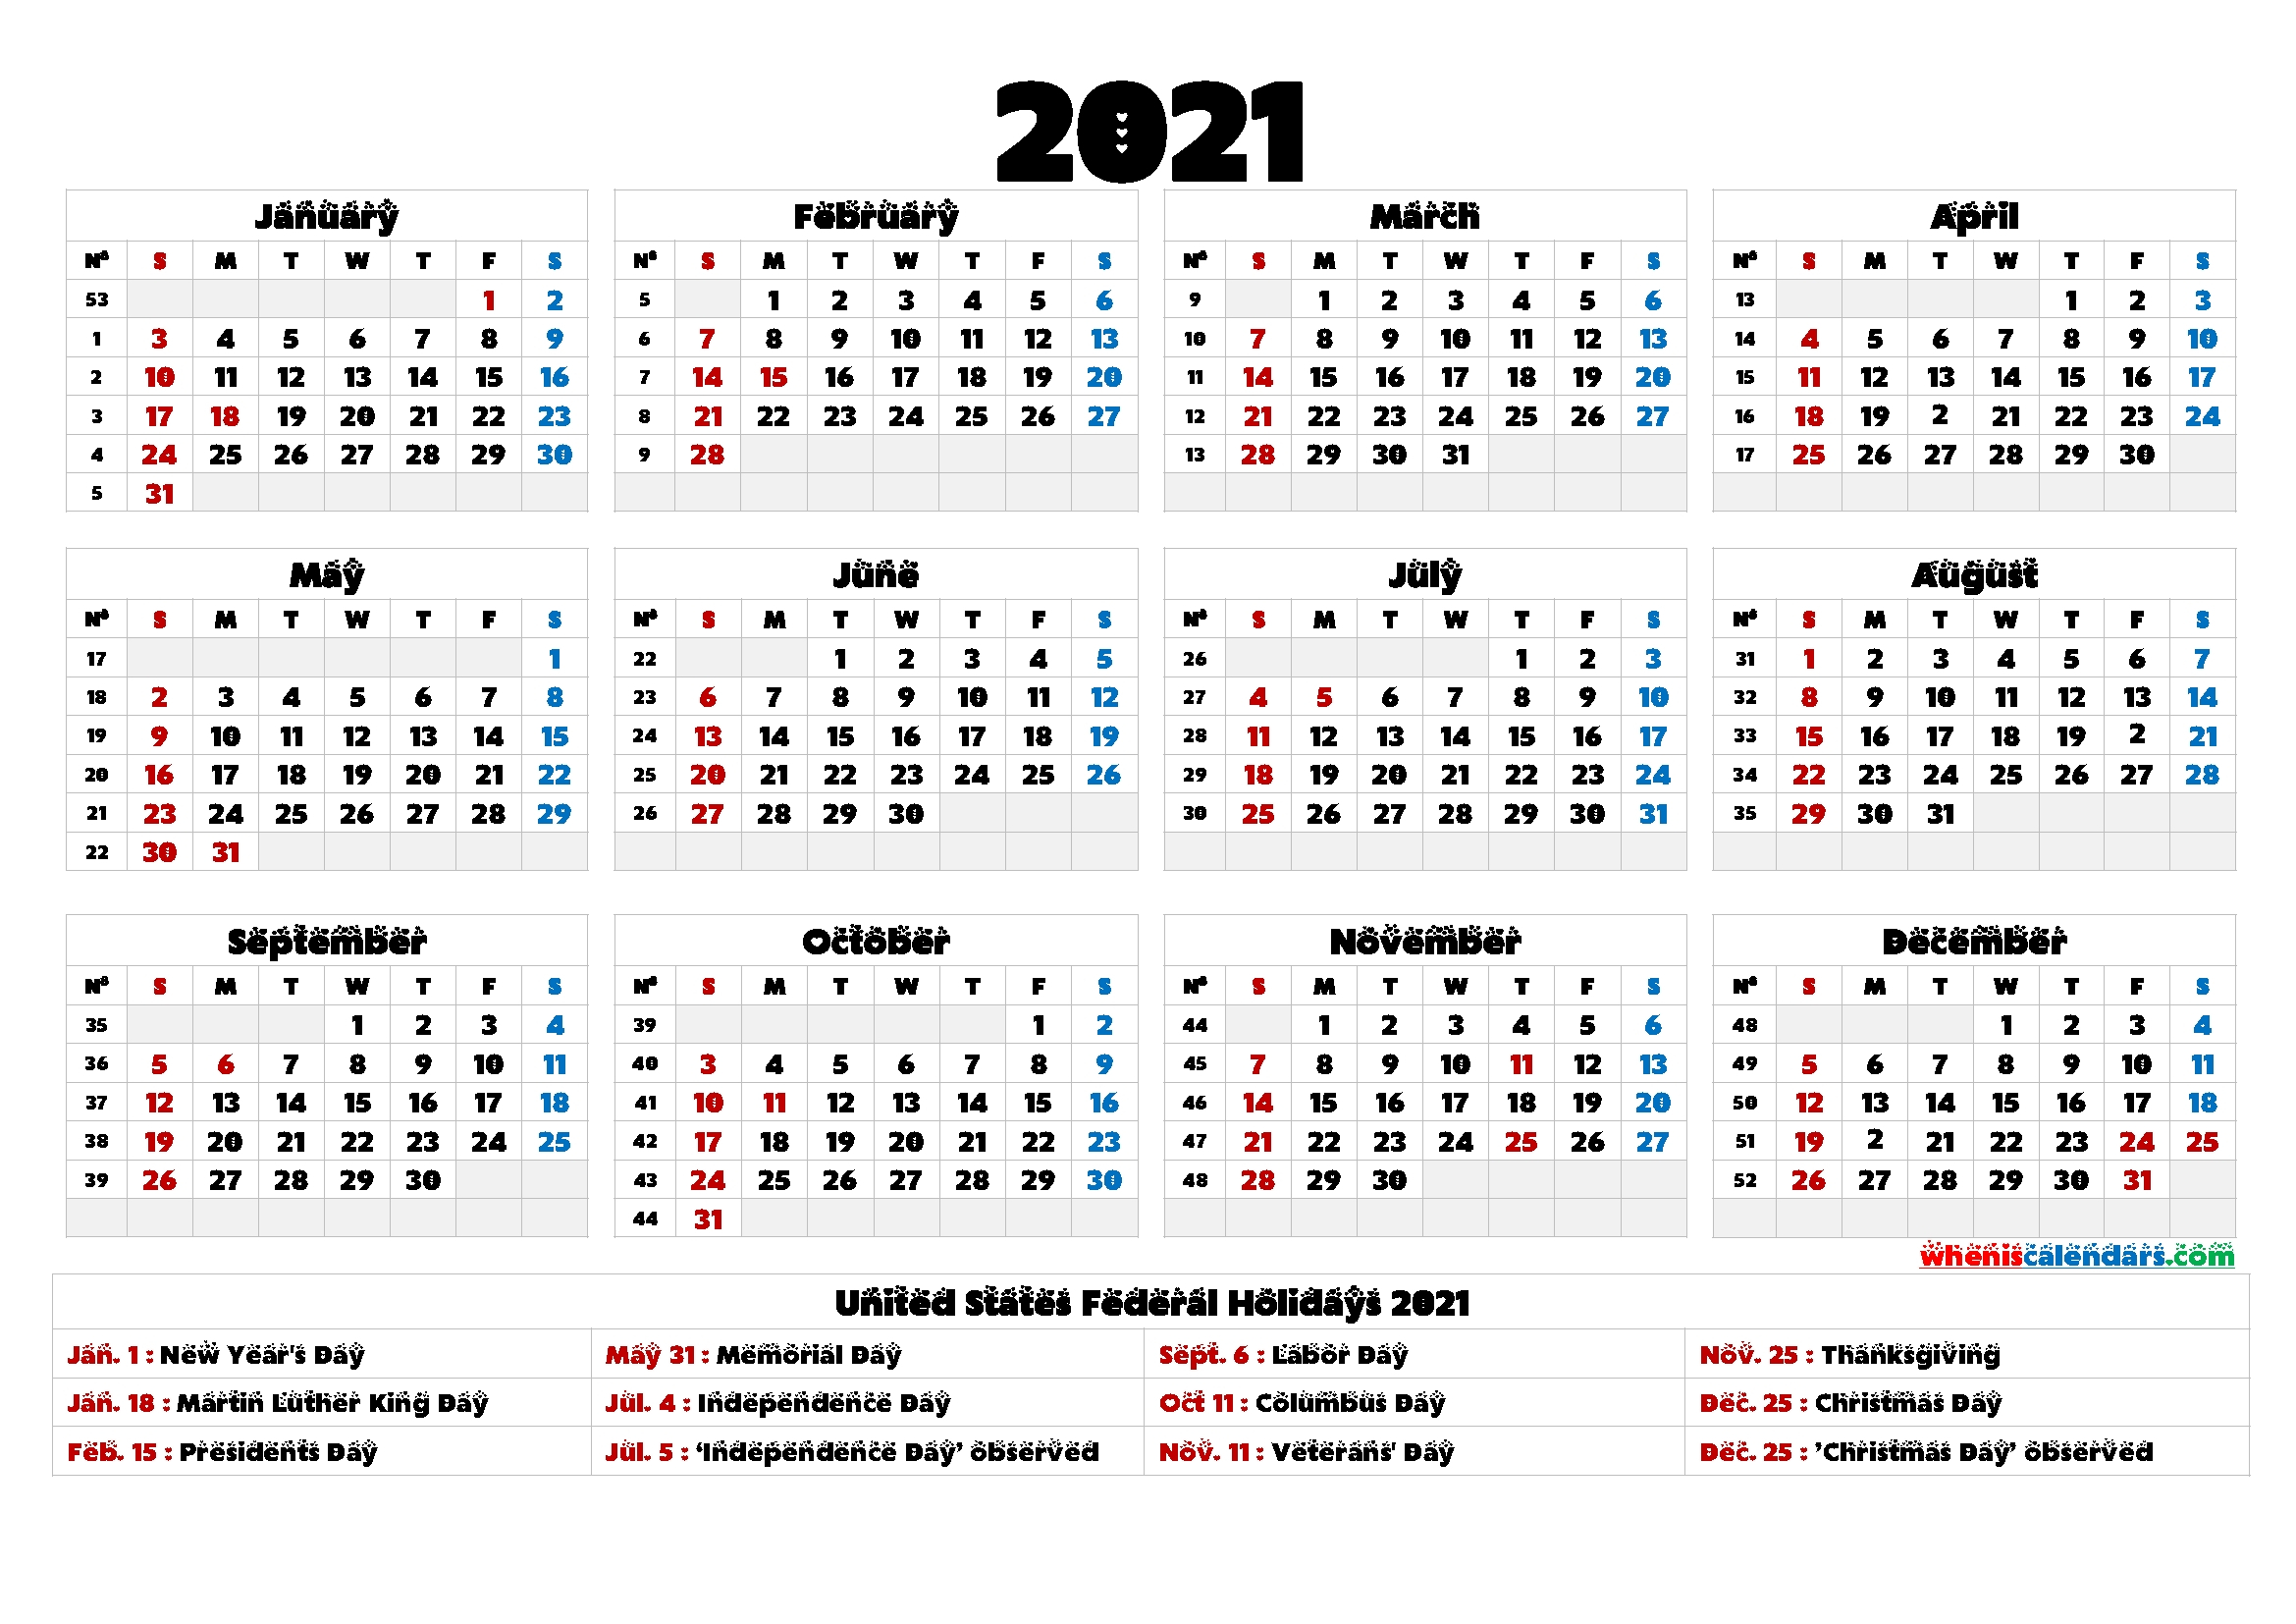 4Mmonth Calendar On One Page 2021  Example Calendar Printable inside Free Printable Calendars 2021 With Lines